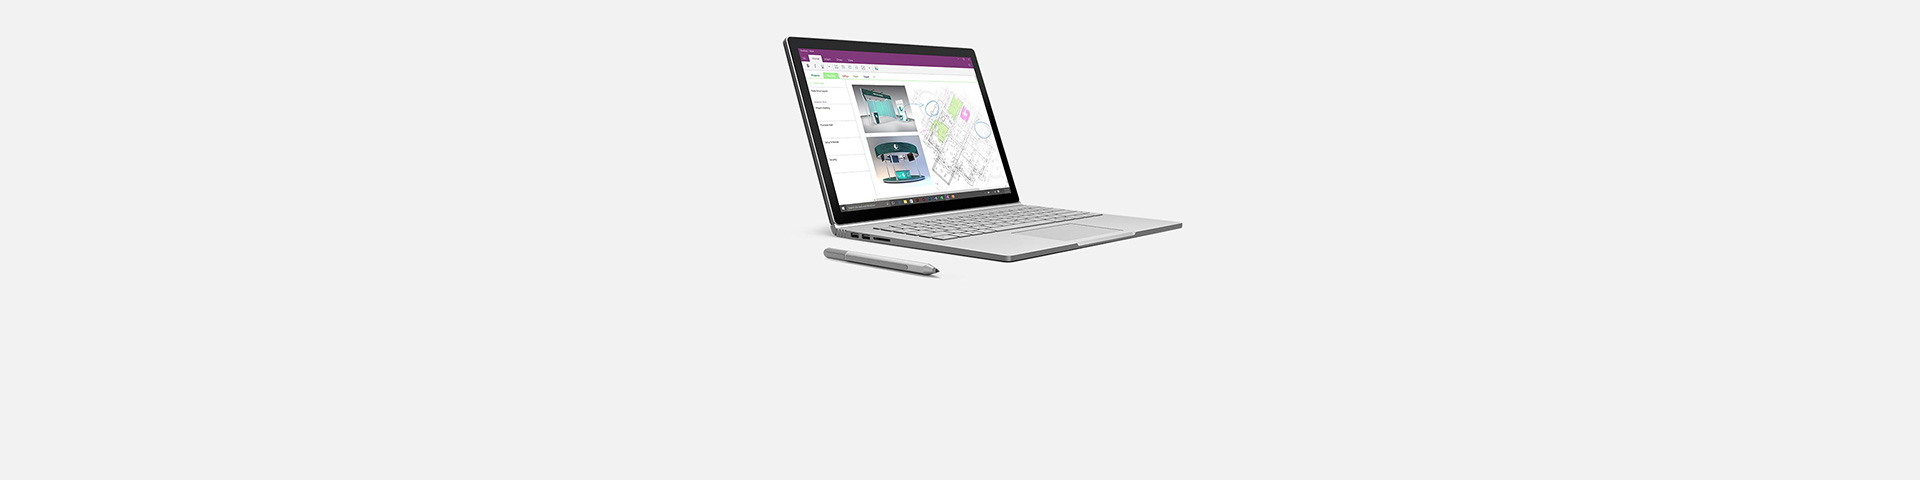 Surface Books, weitere Informationen